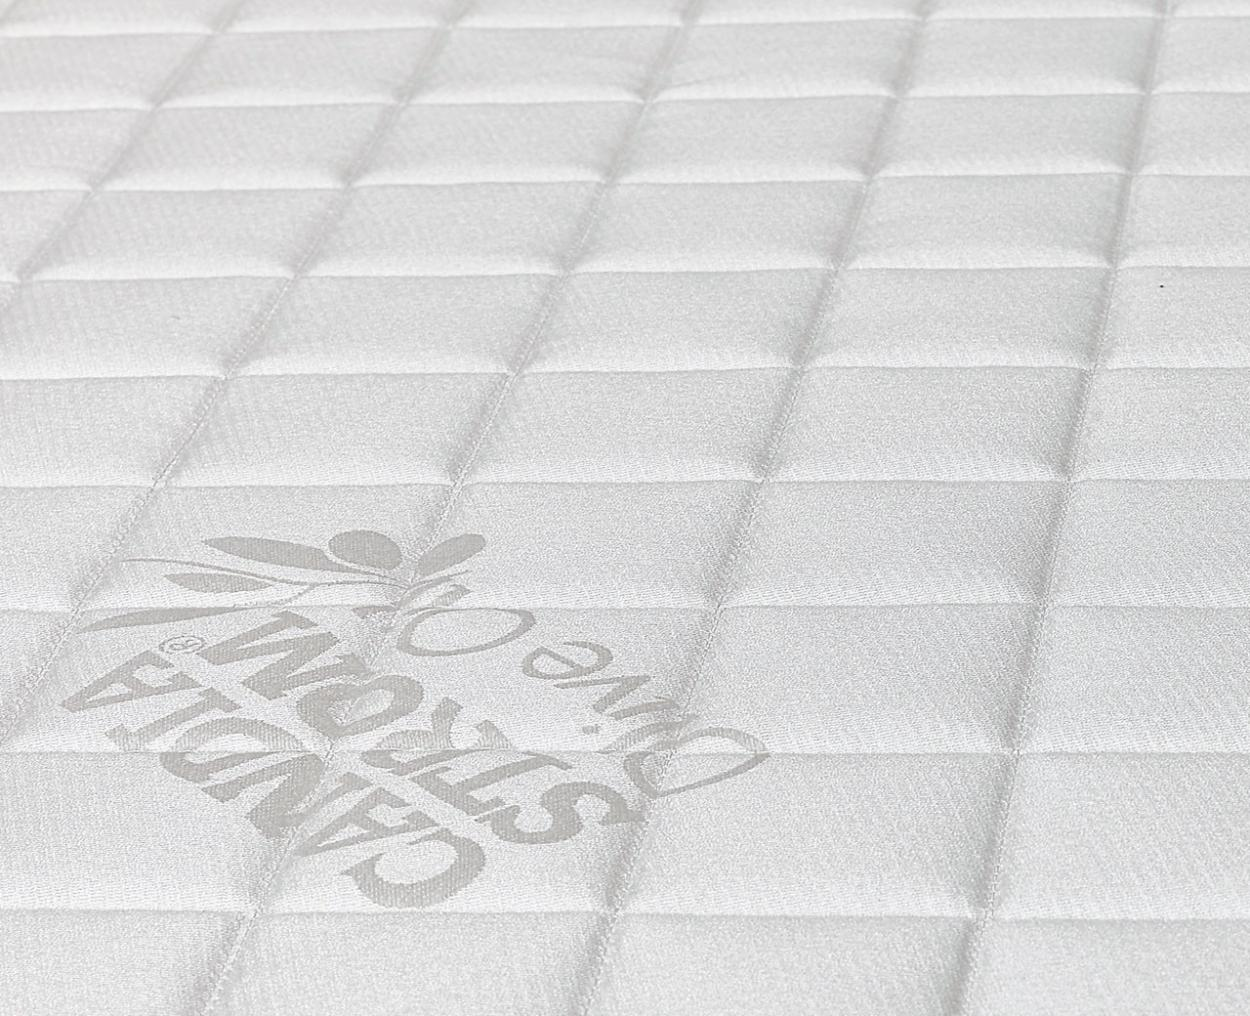 CandiaStrom - Mattress SOUTHERN ESSENCE - NATUREZZA COLLECTION -  Details